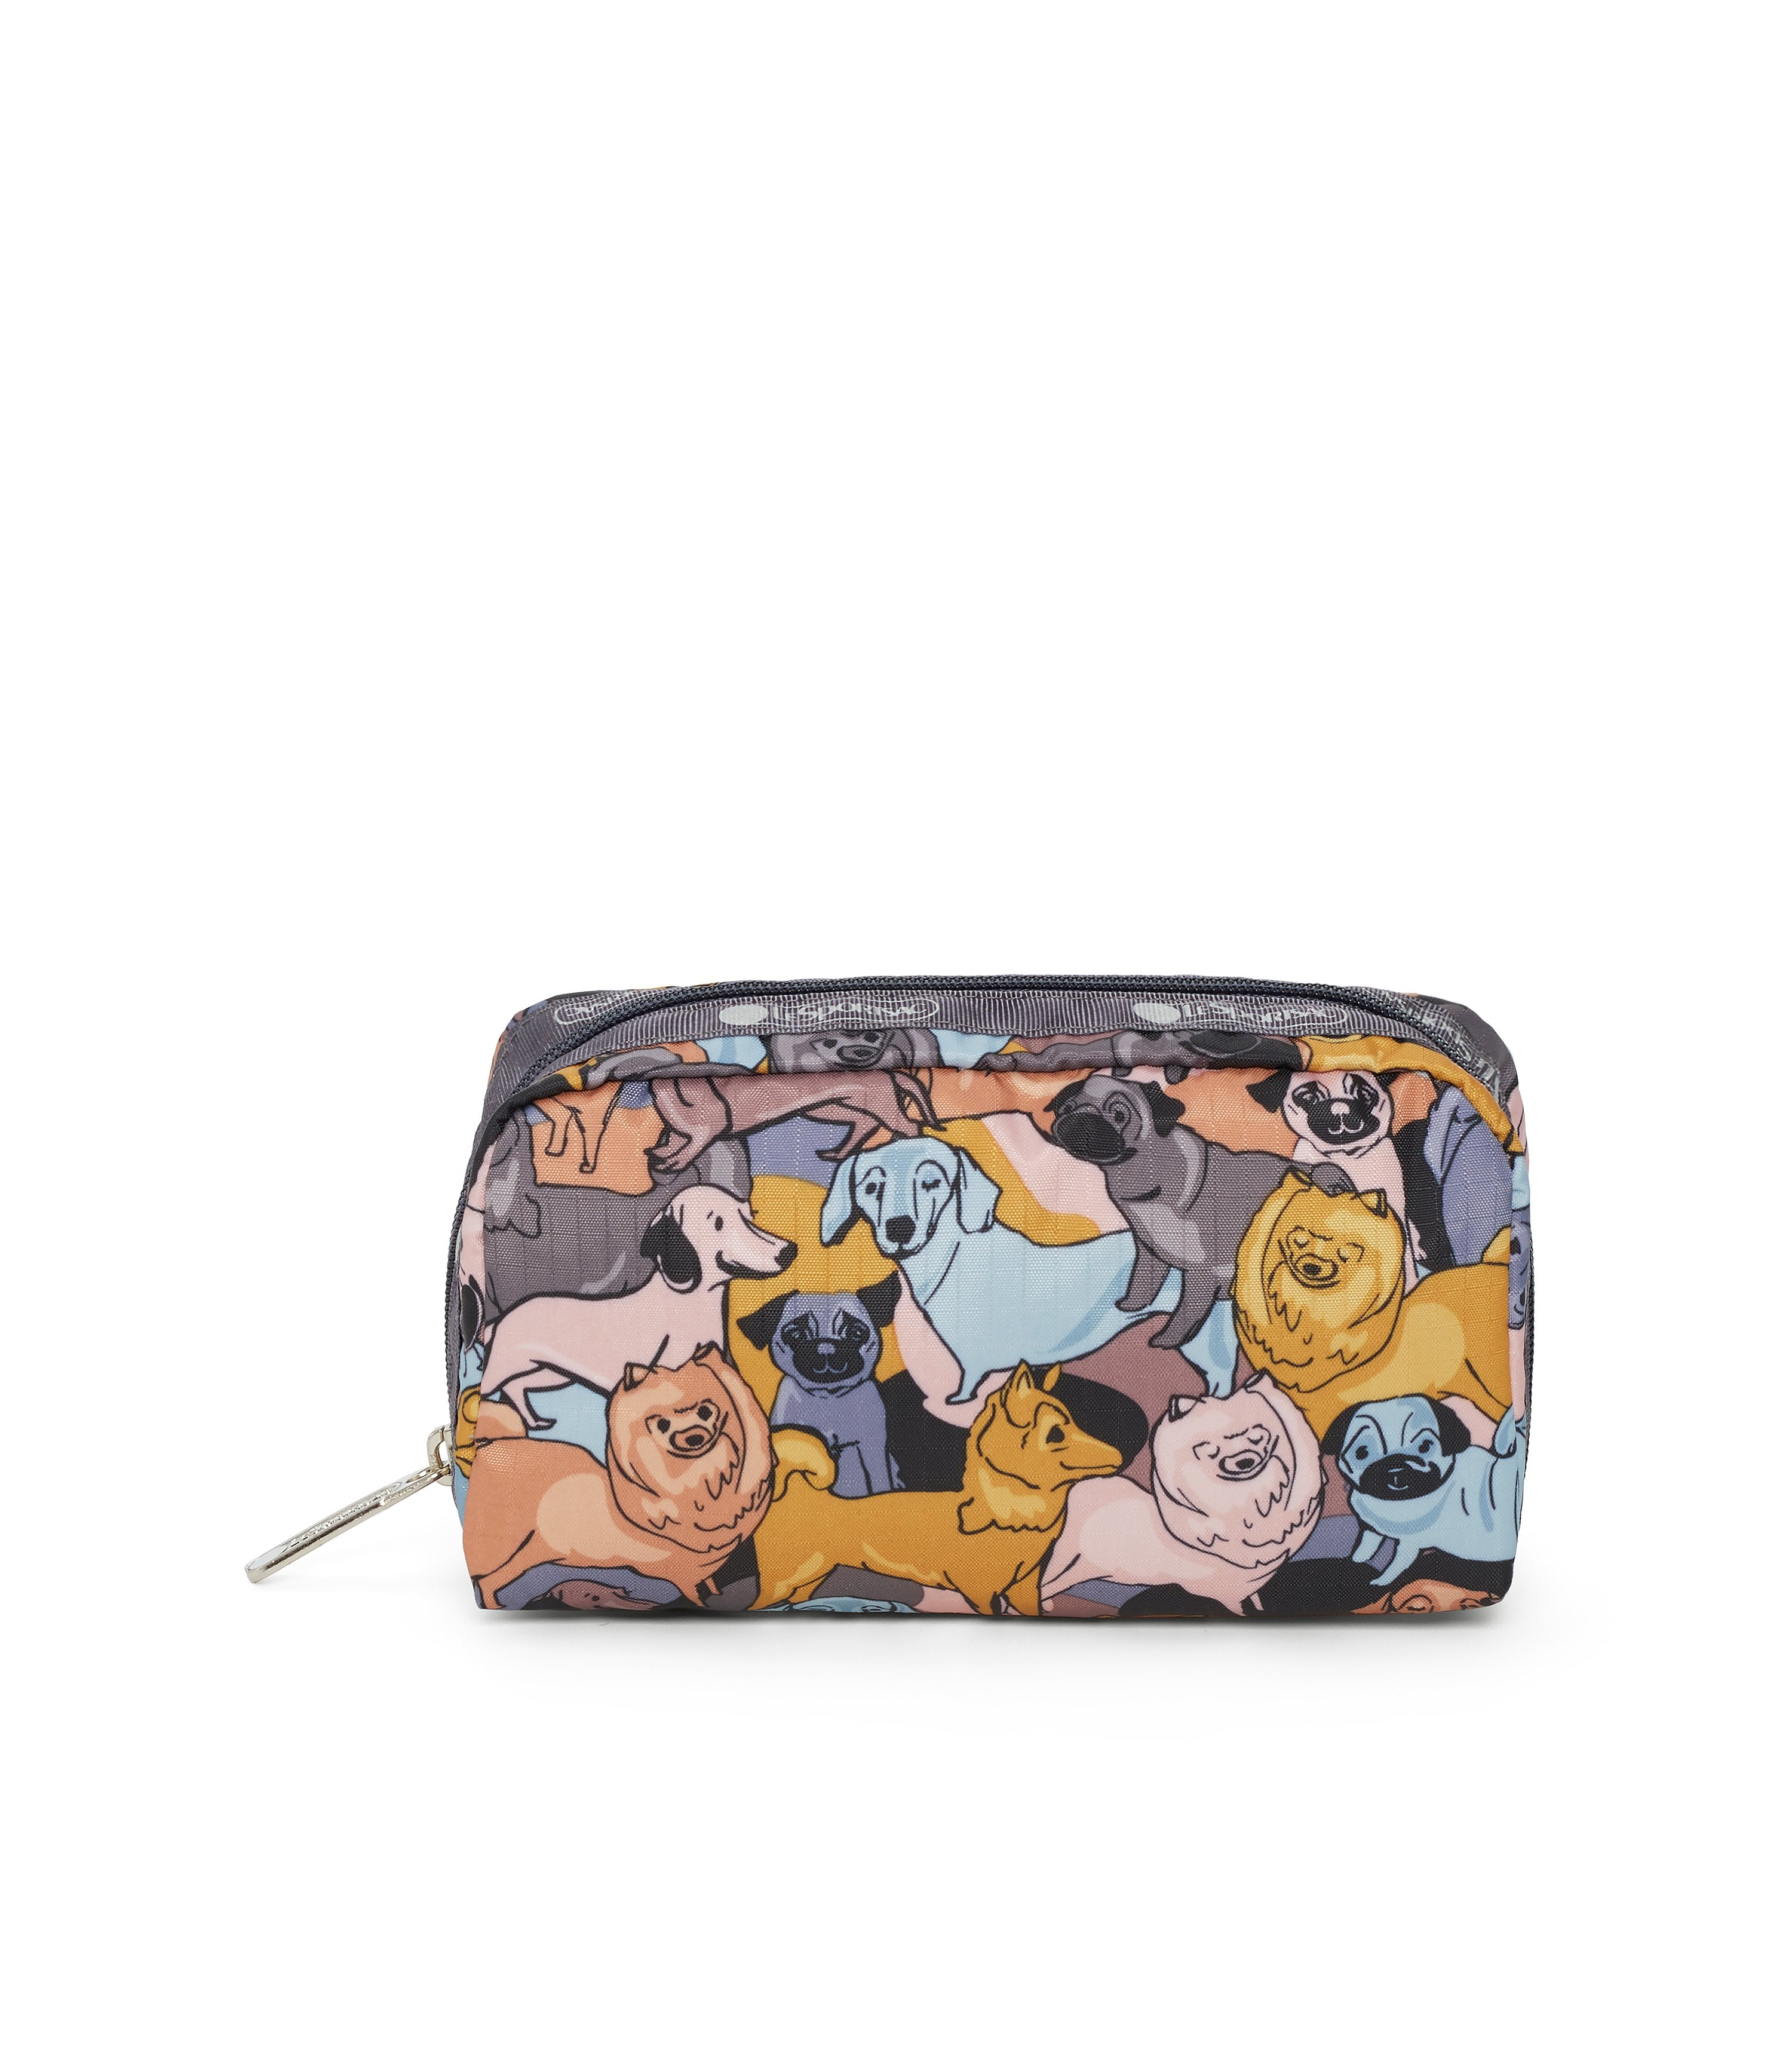 Rectangular Cosmetic, Accessories, Makeup and Cosmetic Bags, LeSportsac, Kon and Friends print